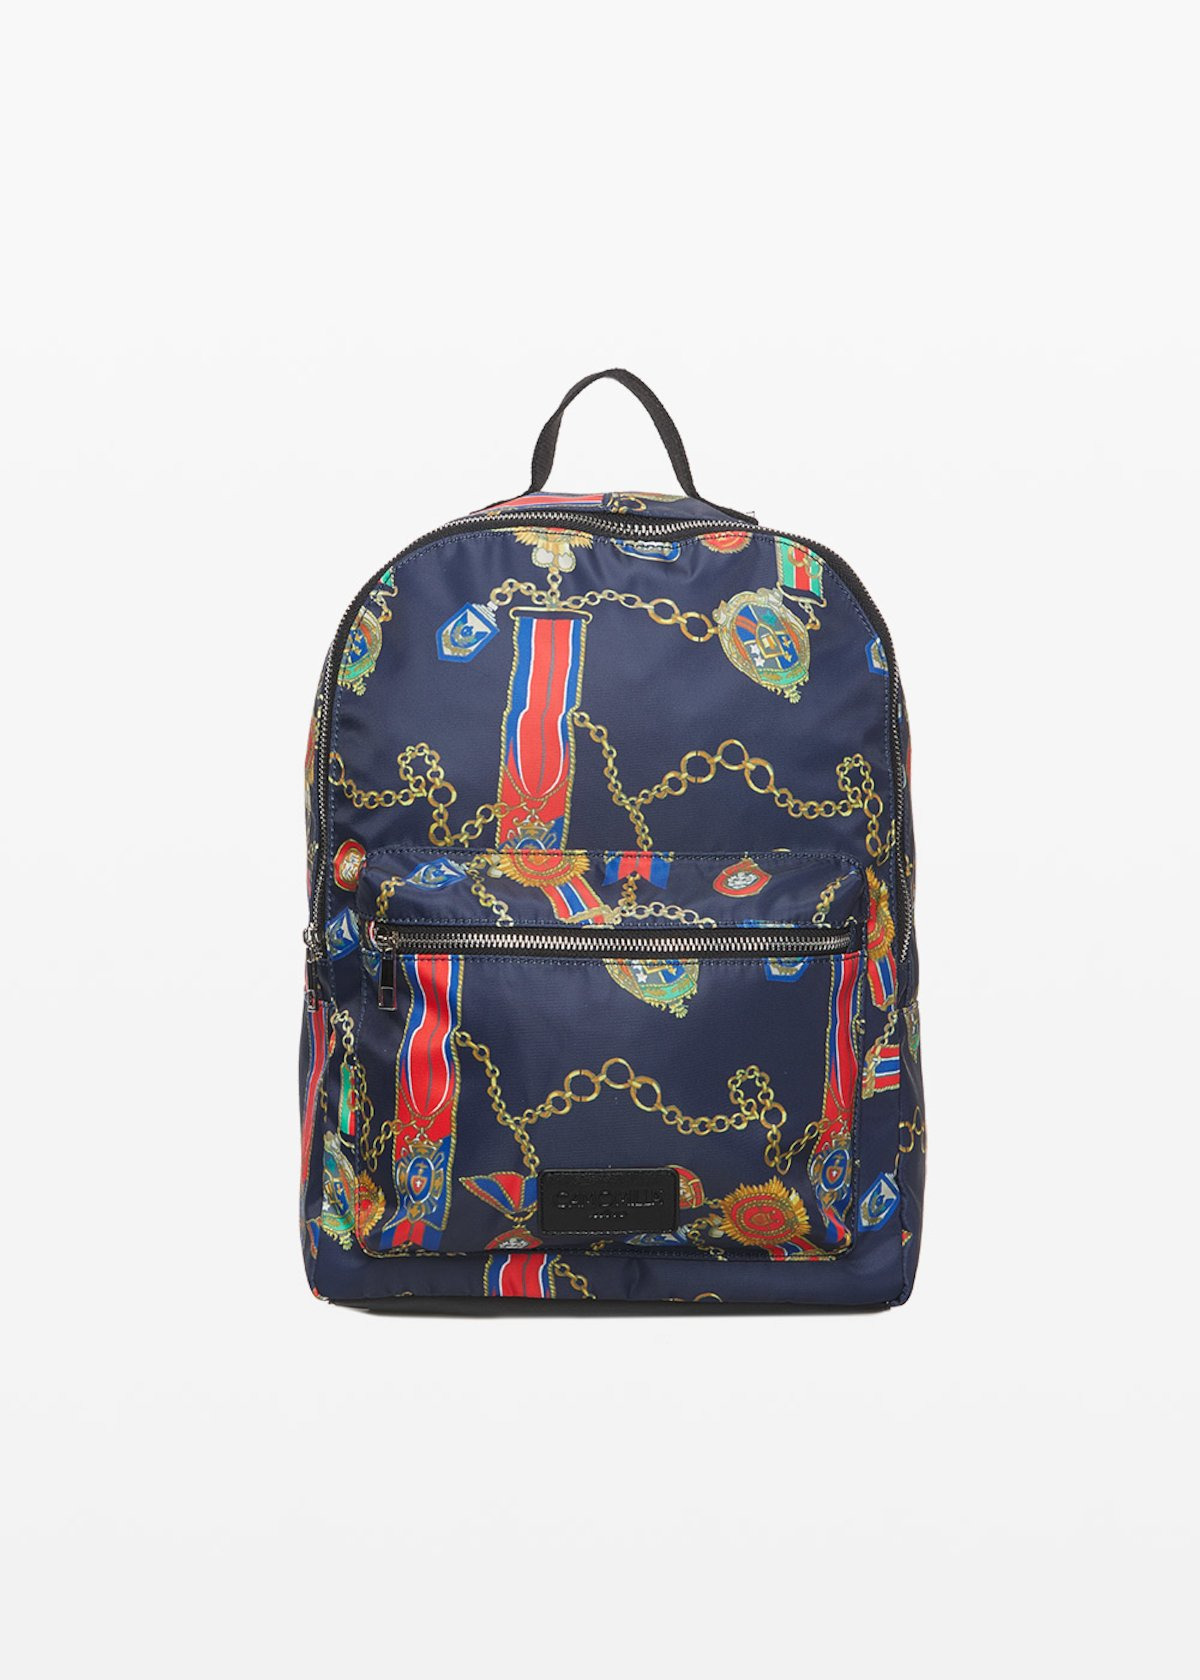 Bleau chains and medals print nylon backpack - Medium Blue Fantasia - Woman - Category image